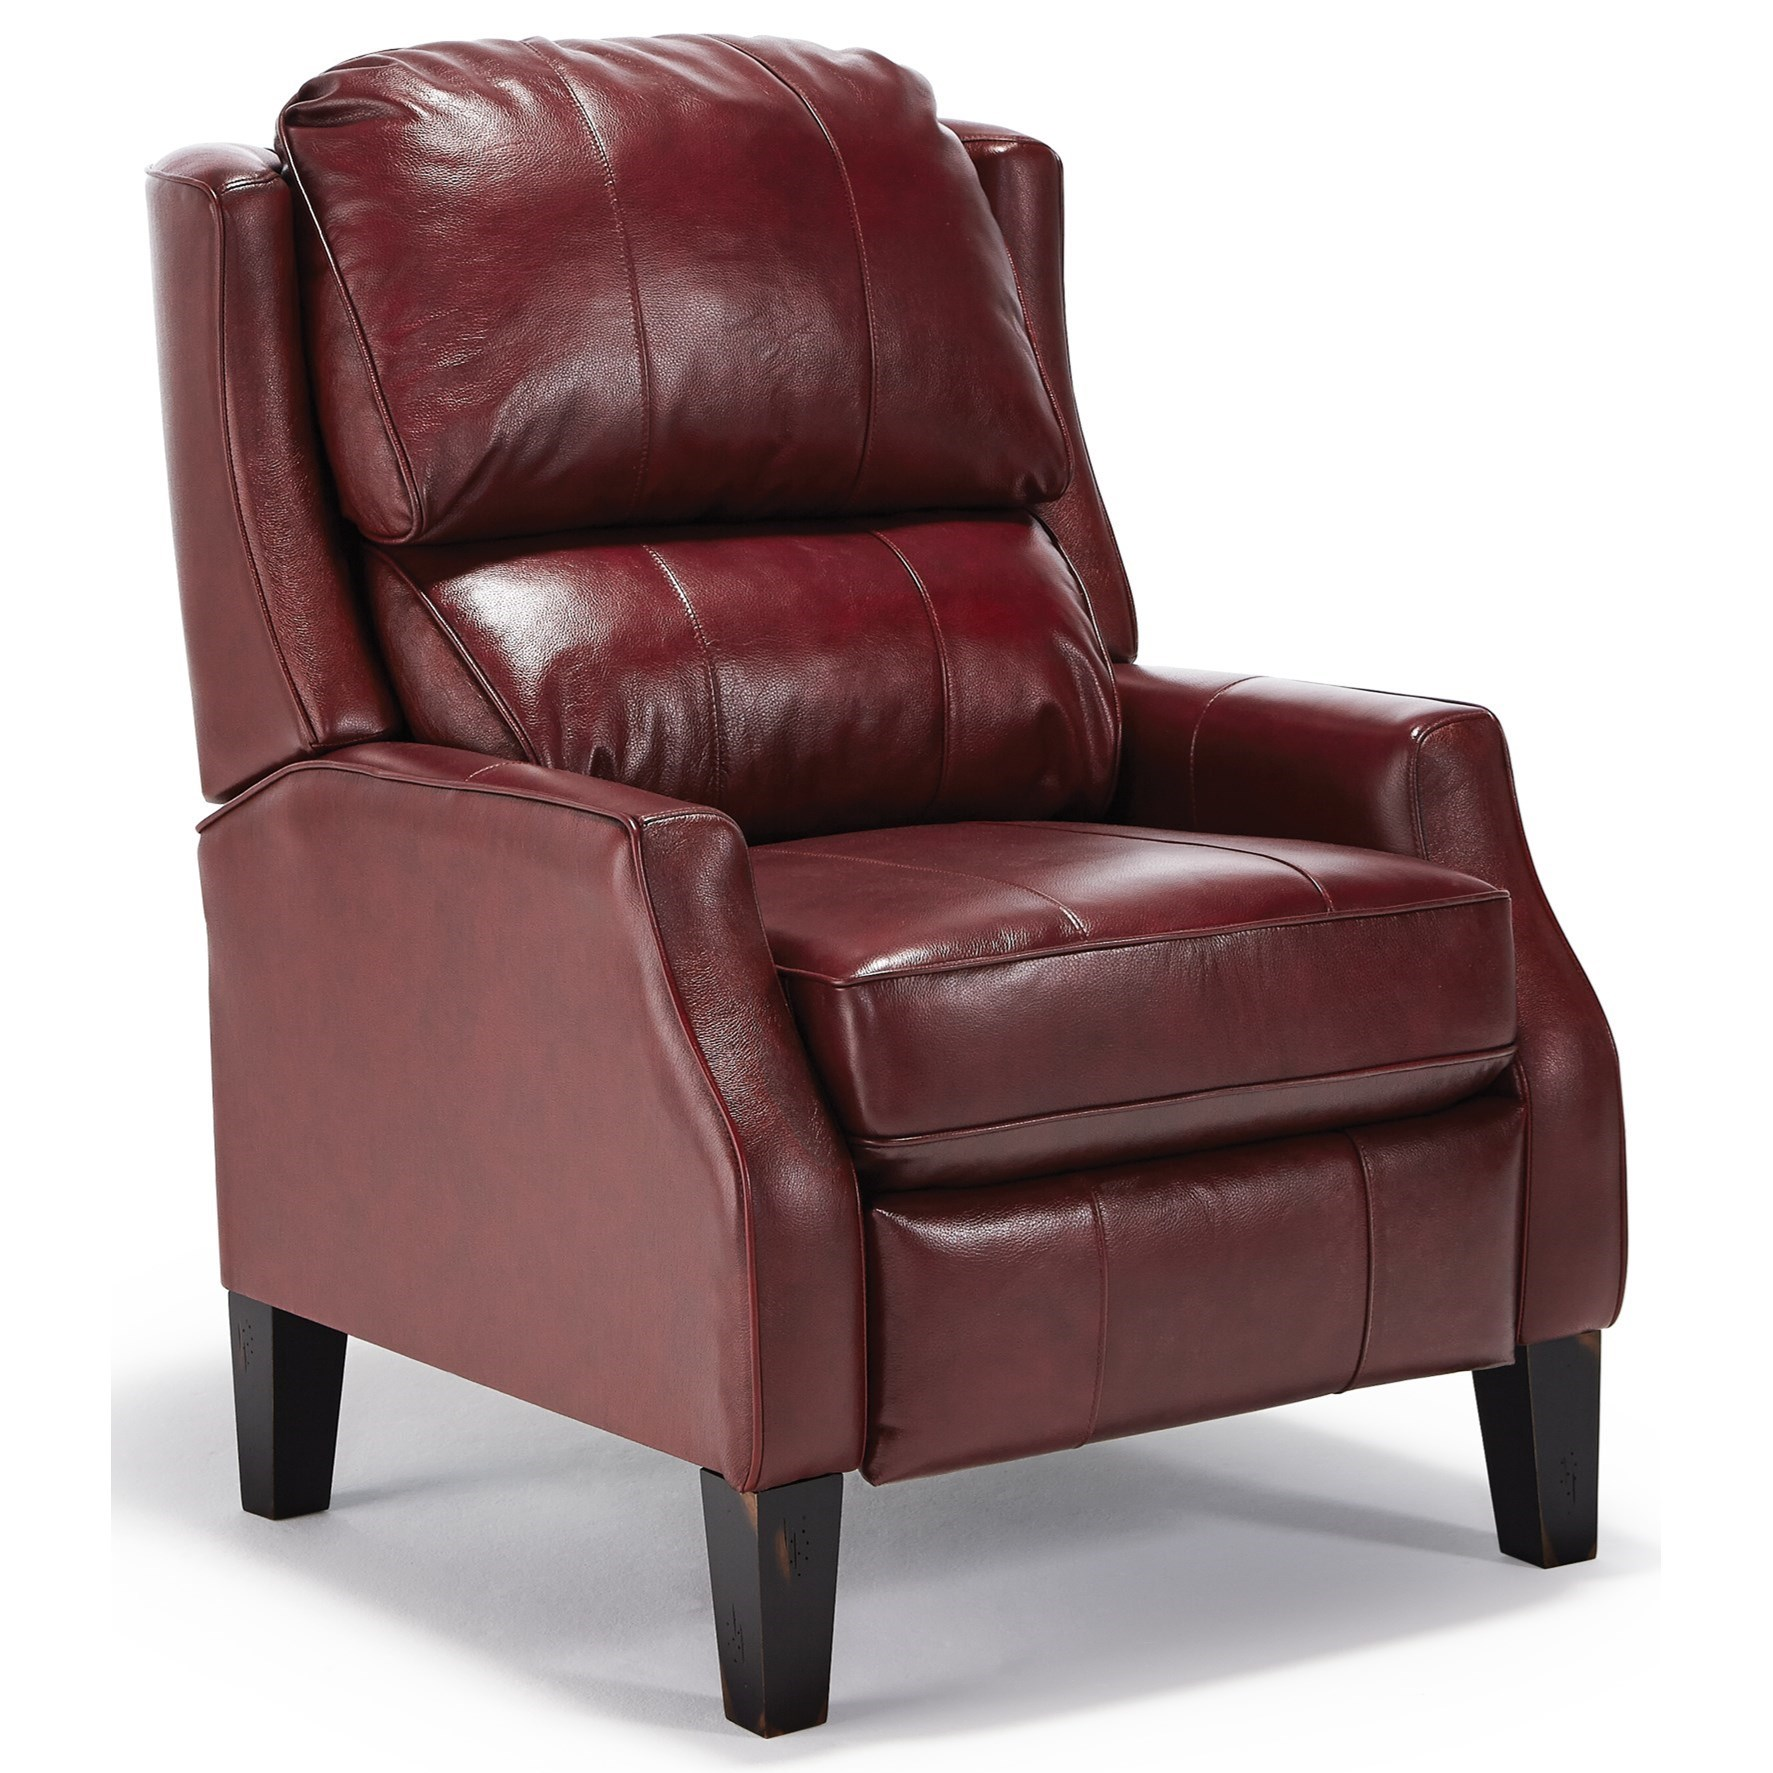 Medium Recliners Pauley Three Way Power Recliner by Best Home Furnishings at Baer's Furniture